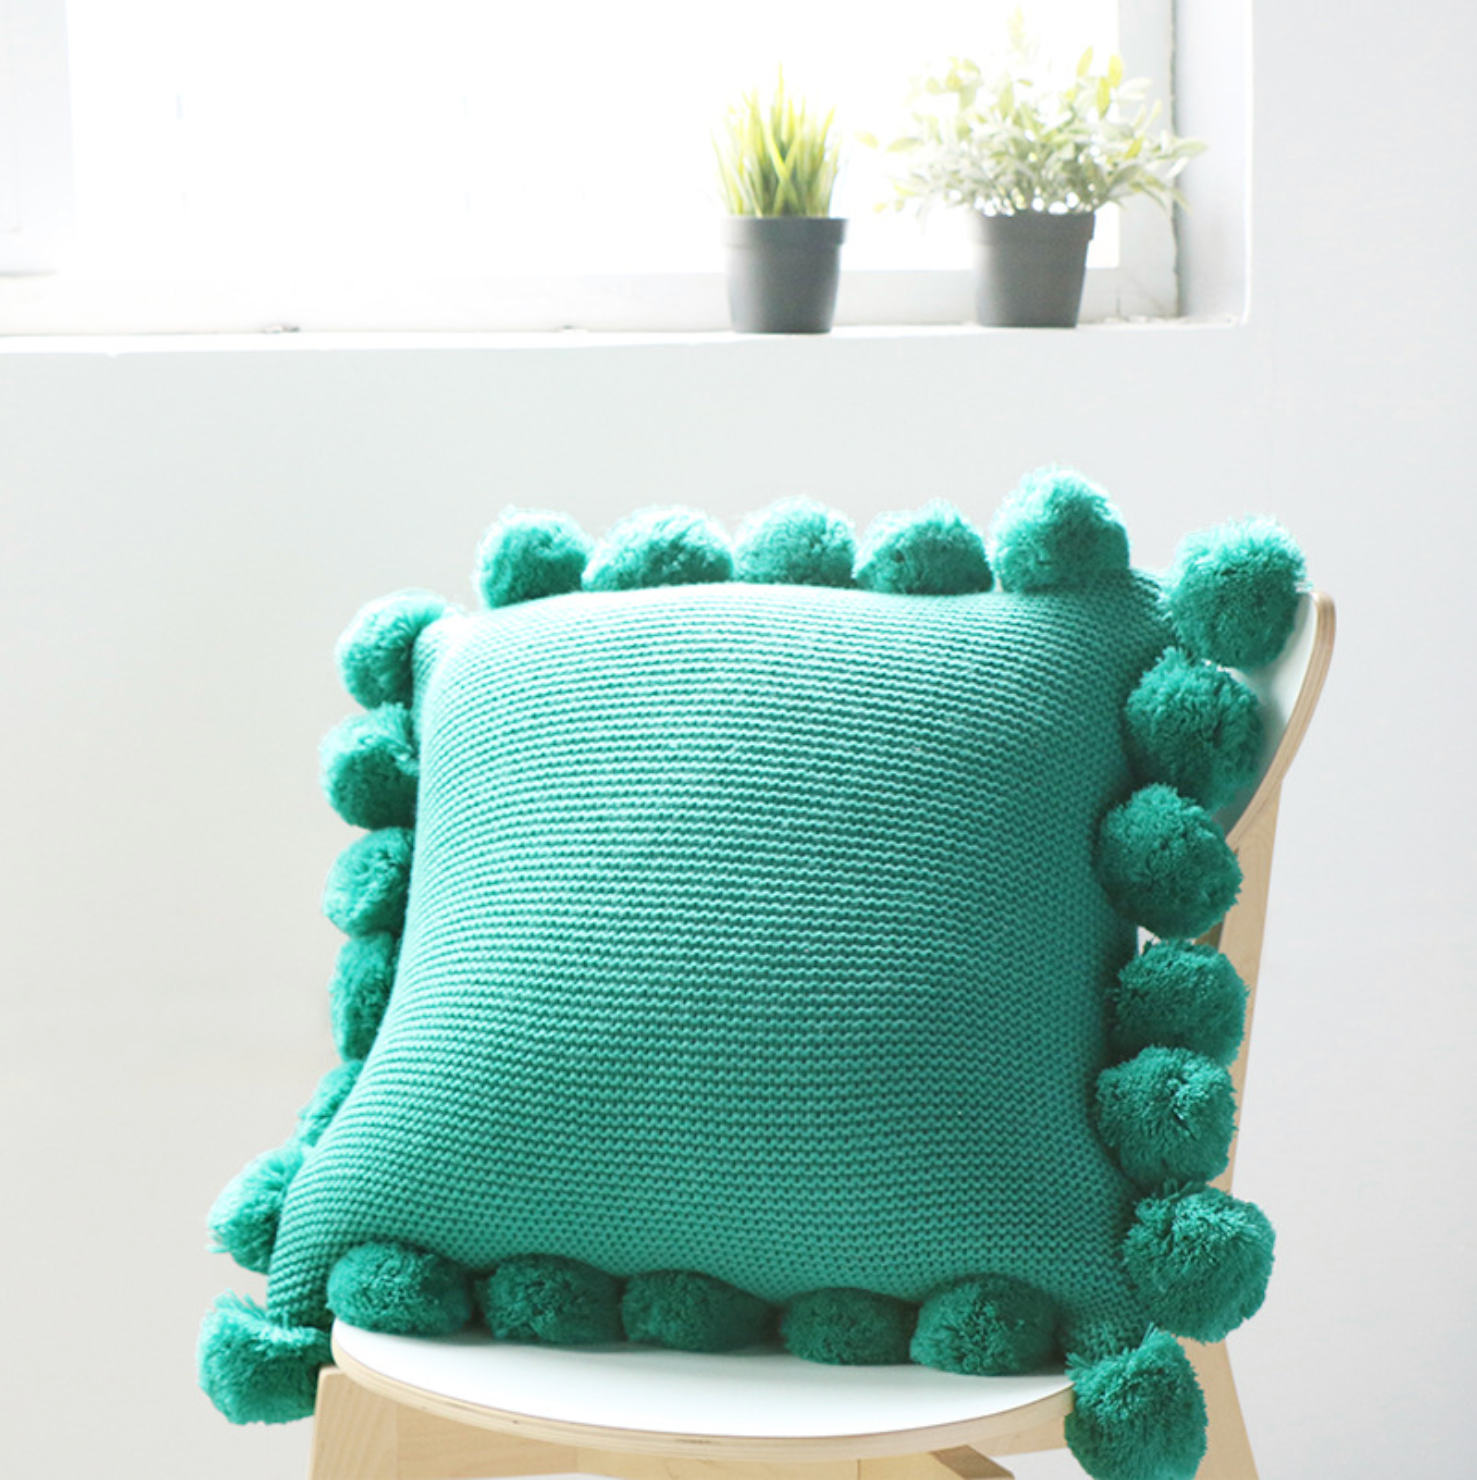 MERRY Pompom Pillow with core (L) - Green - Nestasia Home Decor